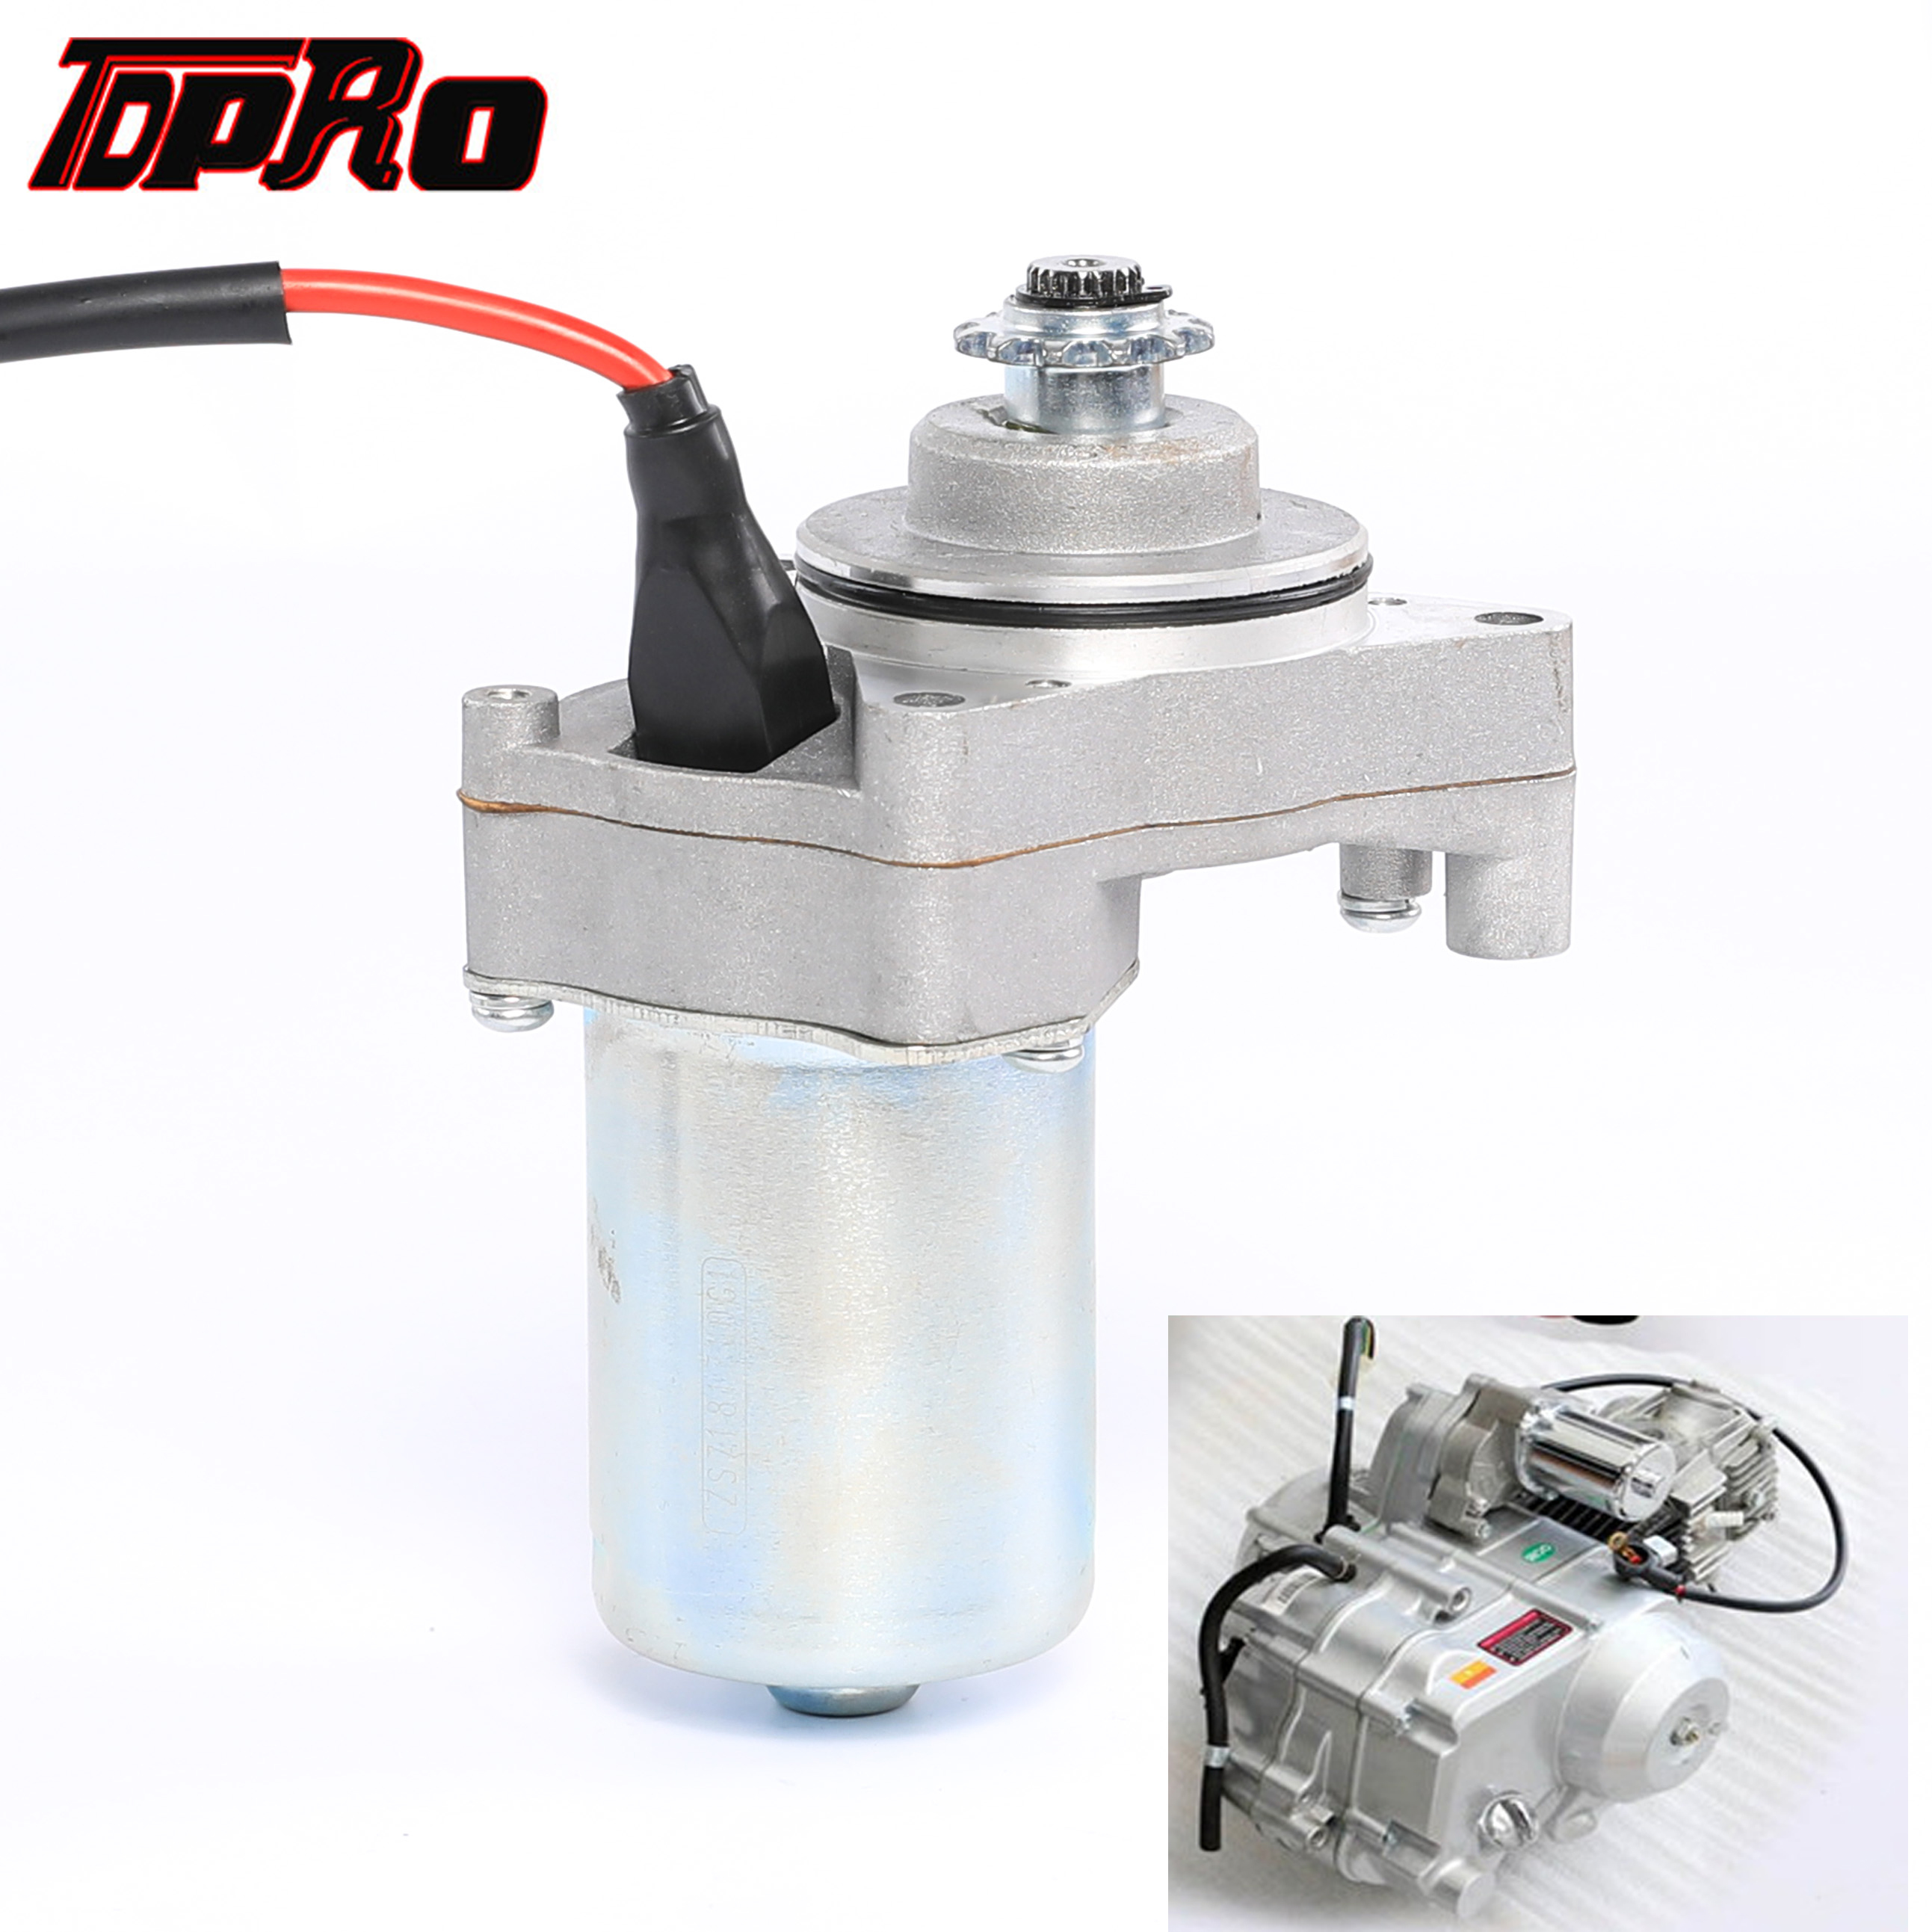 TDPRO Top Engine Position 3 Bolt Electric Start Motorcycle Starter <font><b>Motor</b></font> For Yamaha 50cc 70cc 90cc <font><b>110cc</b></font> 125cc <font><b>ATV</b></font> Quad Pit Bike image